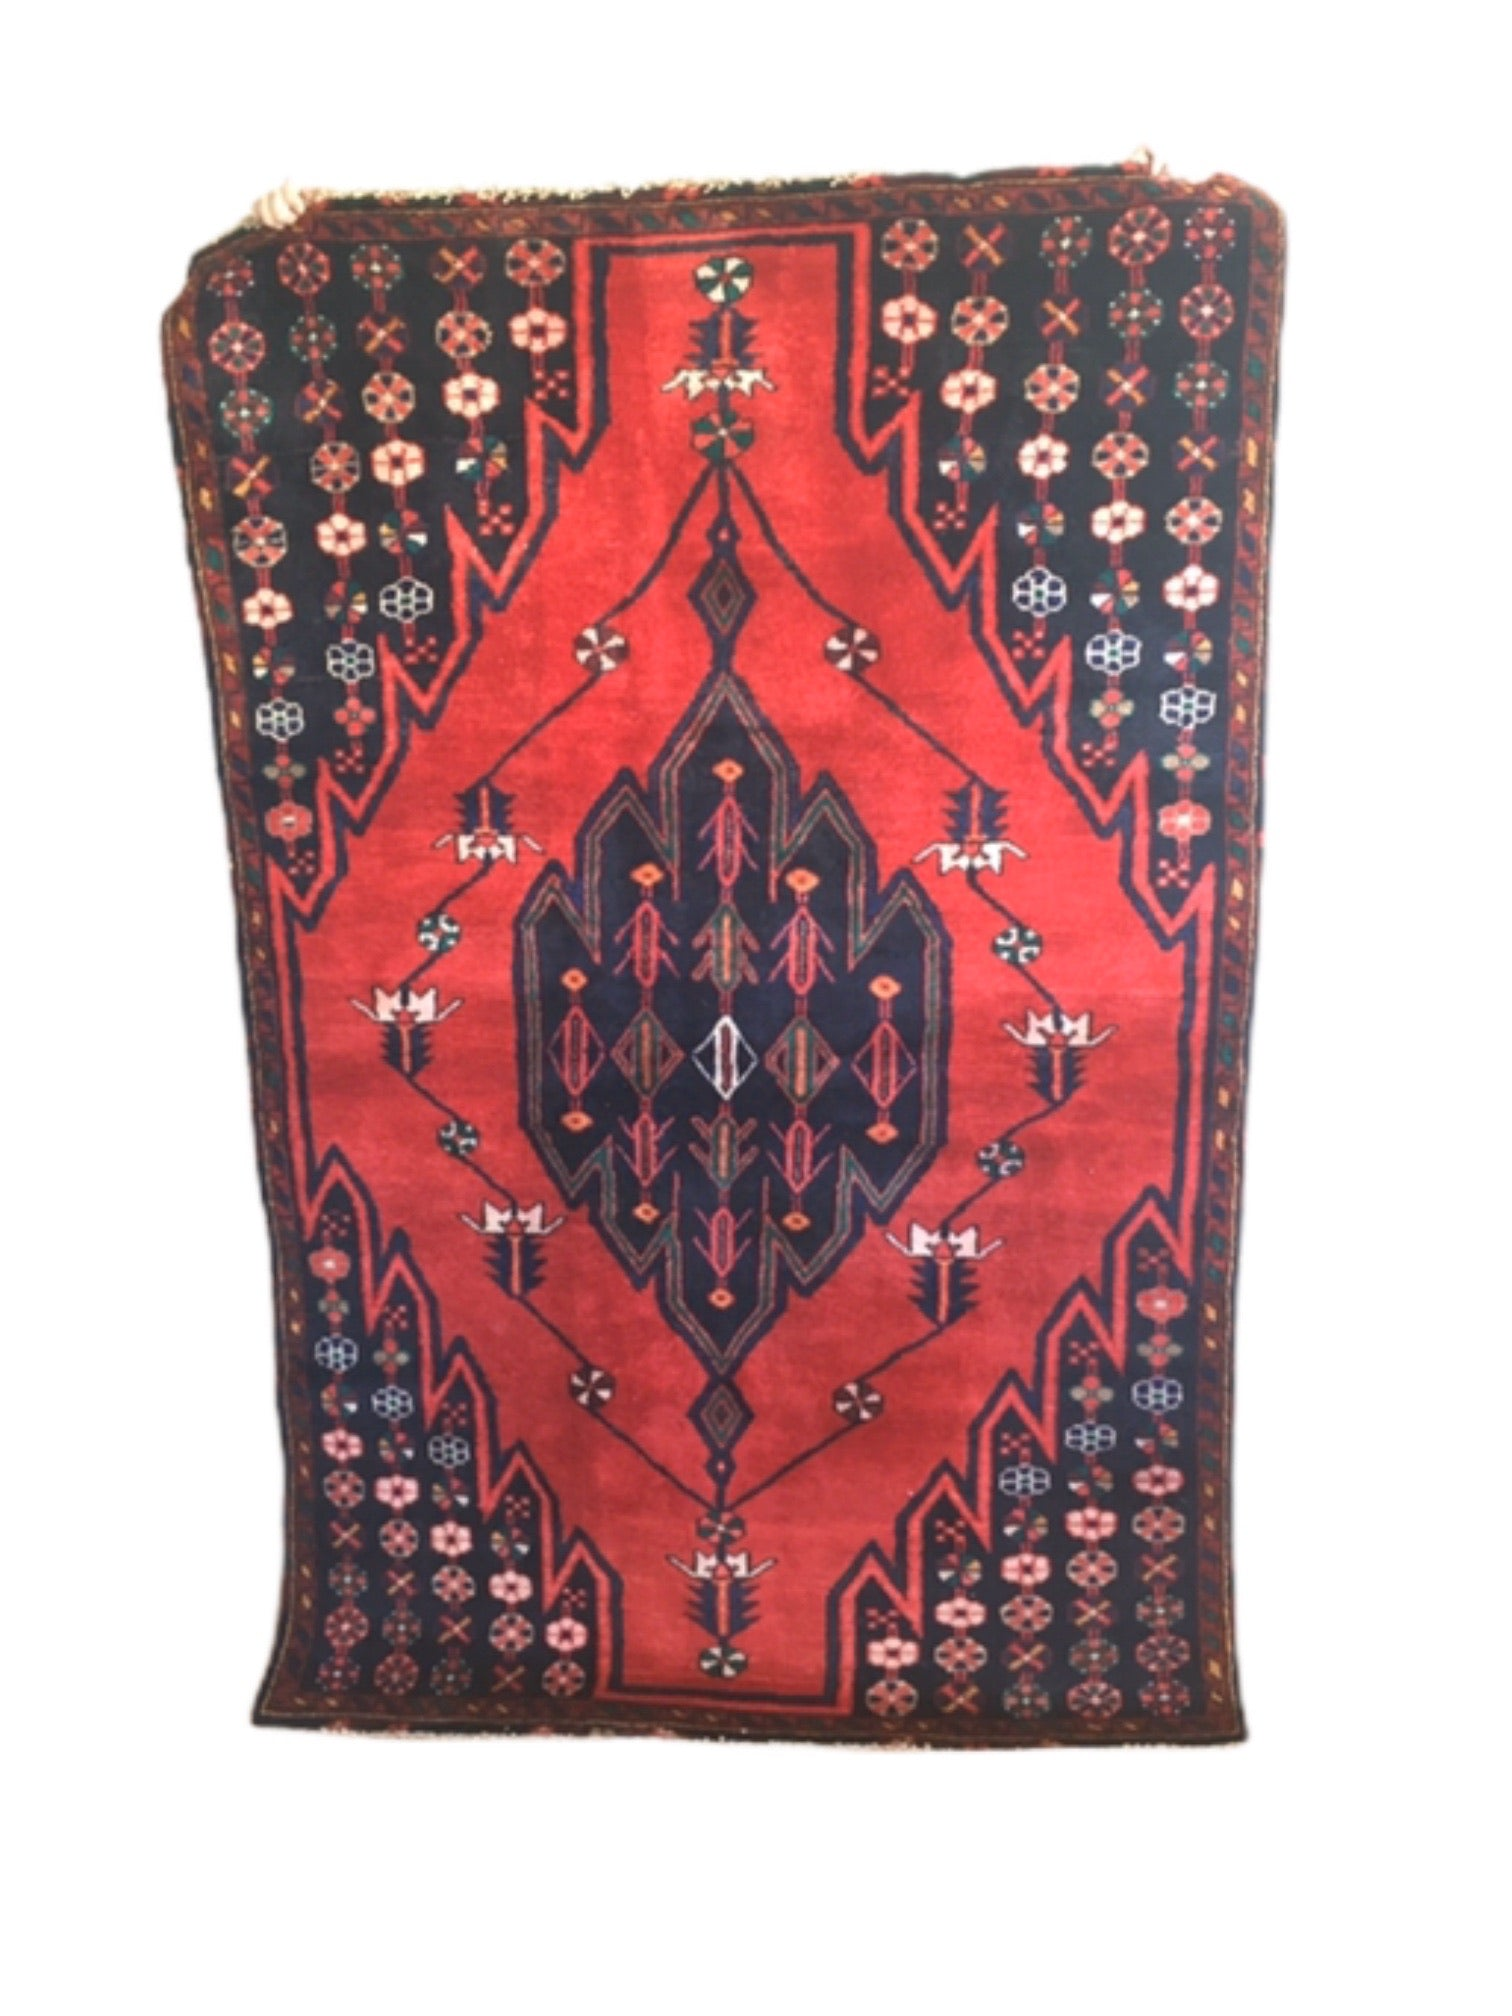 The Abyek Rug